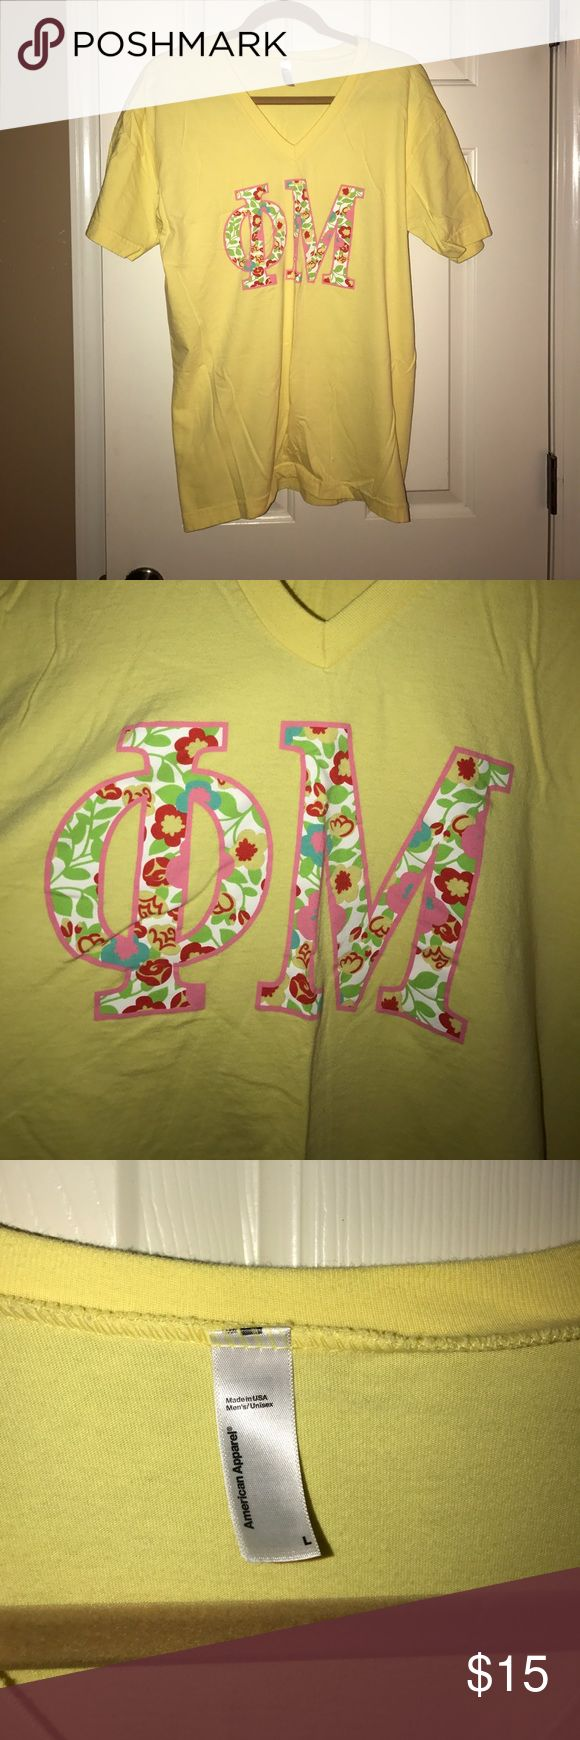 Yellow Phi Mu v-neck letter T-Shirt American Apparel V-Neck t-shirt with printed, floral Greek Phi Mu letters. Perfect for sorority events or casual wear. I have this shirt in a Large and a 2XL! American Apparel Tops Tees - Short Sleeve